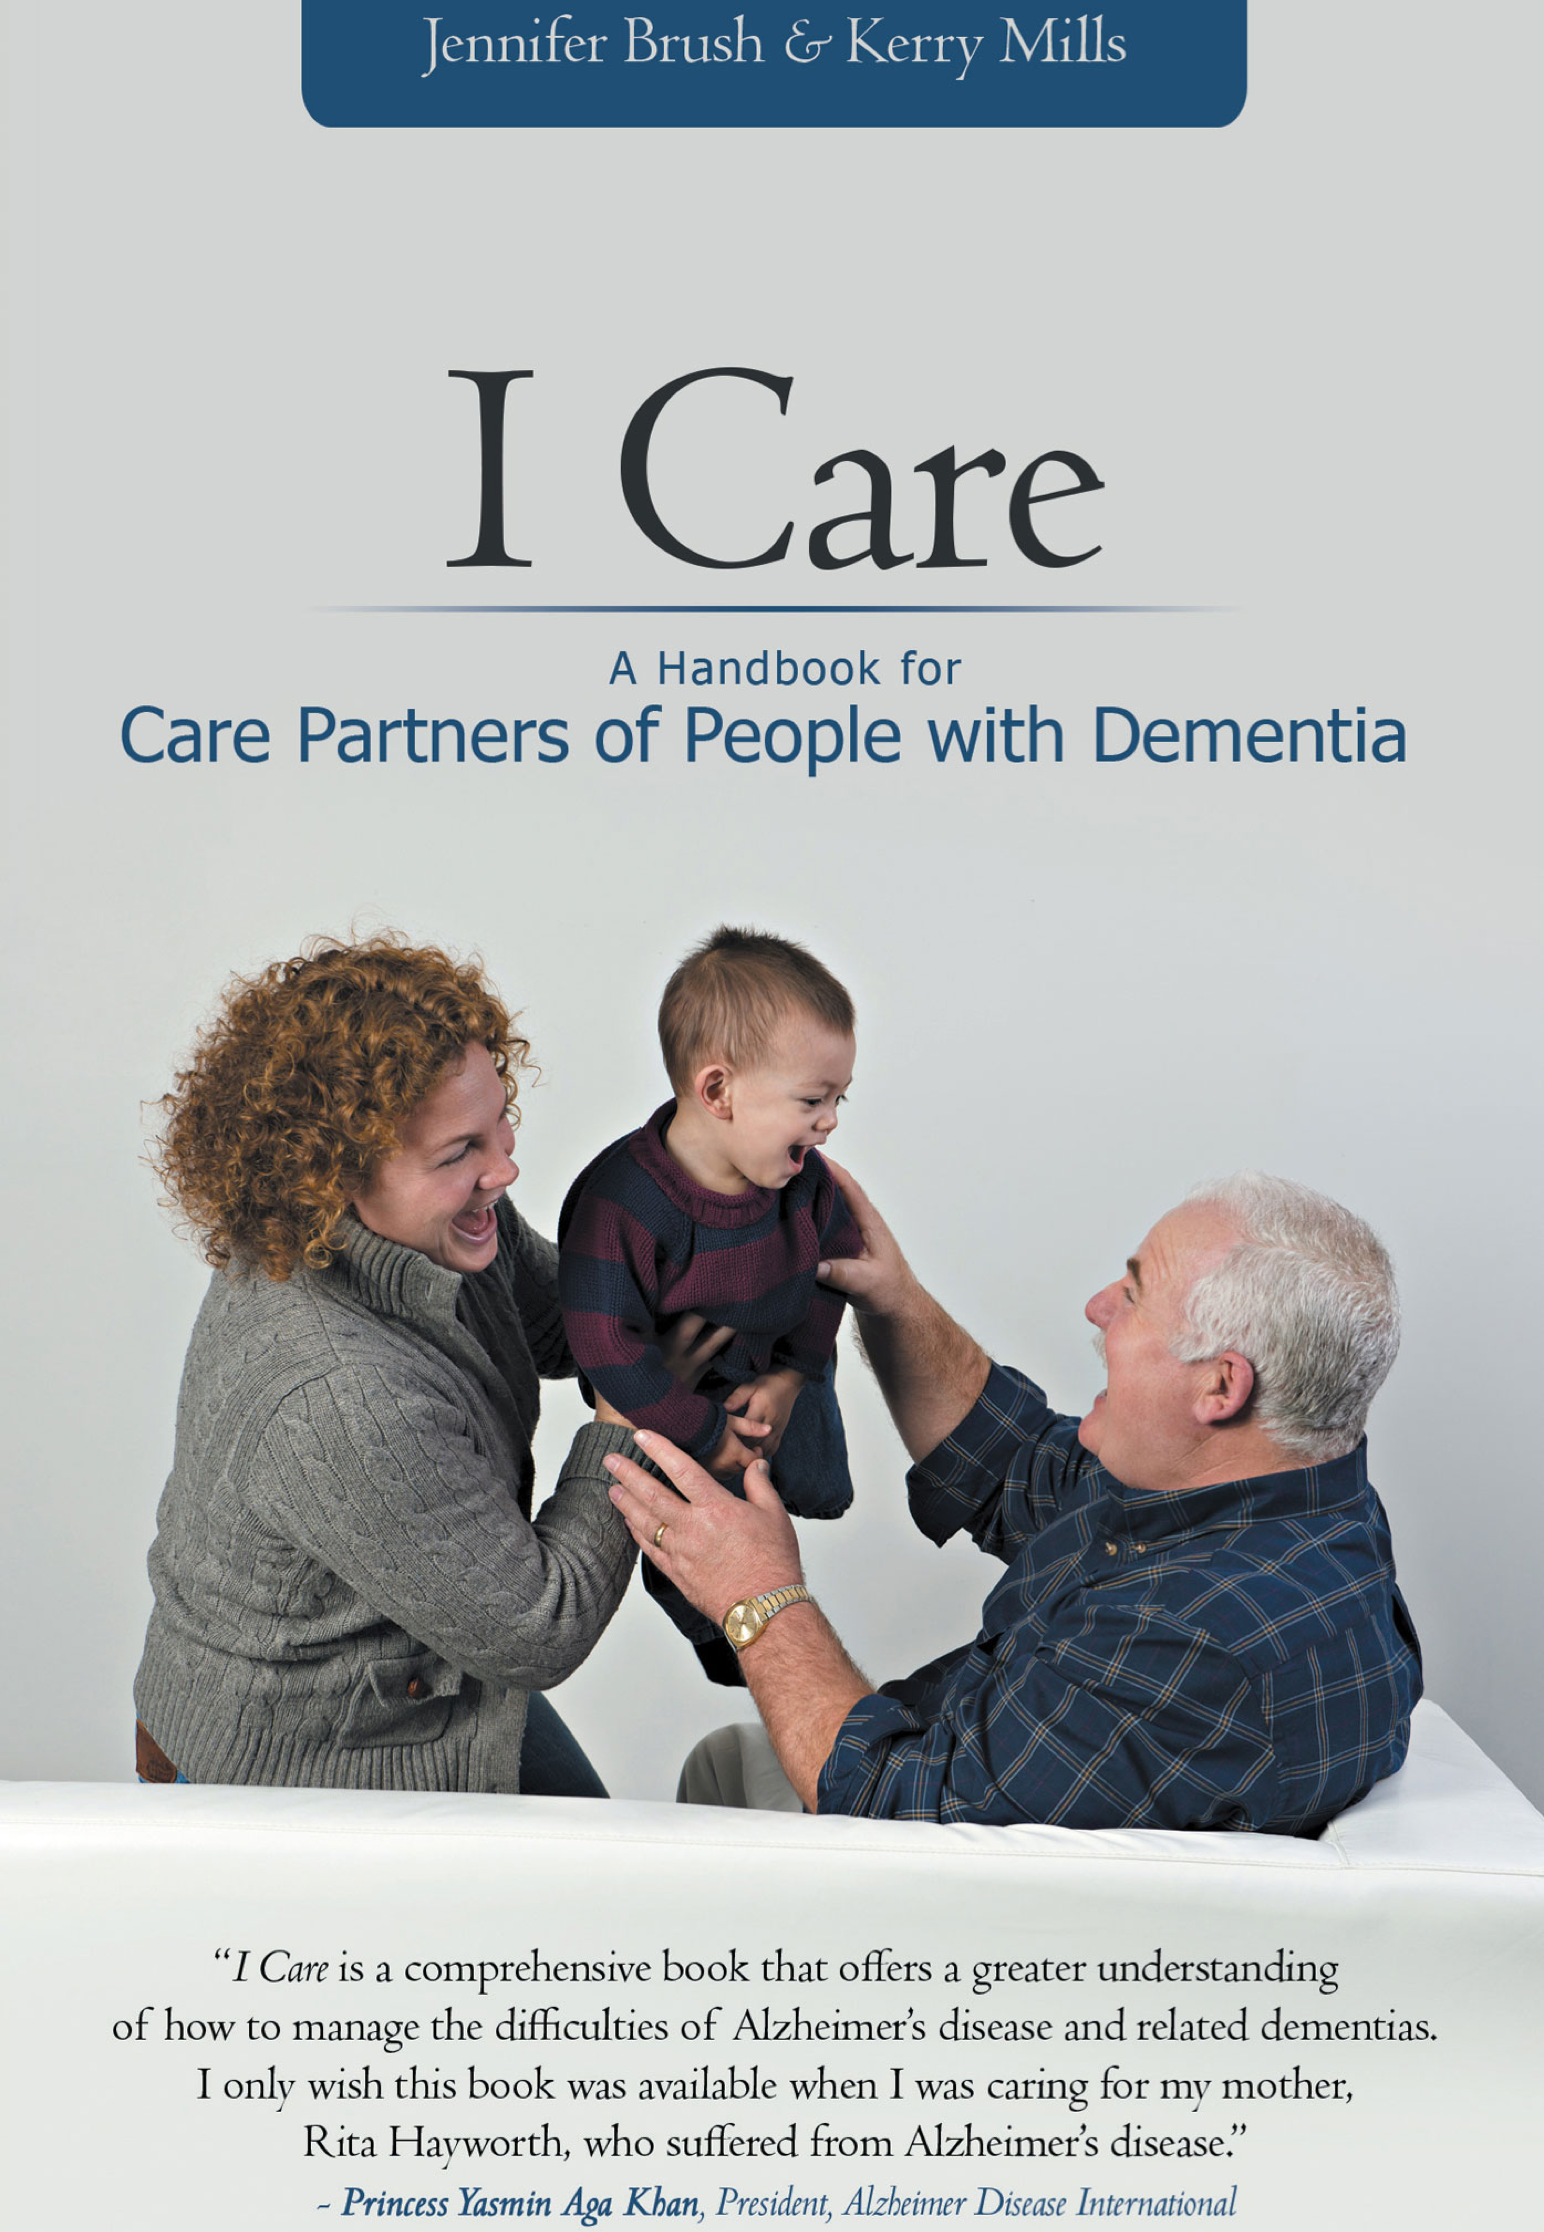 I Care: A Handbook for Care Partners of People with Dementia by Jennifer Brush and Kerry Mills